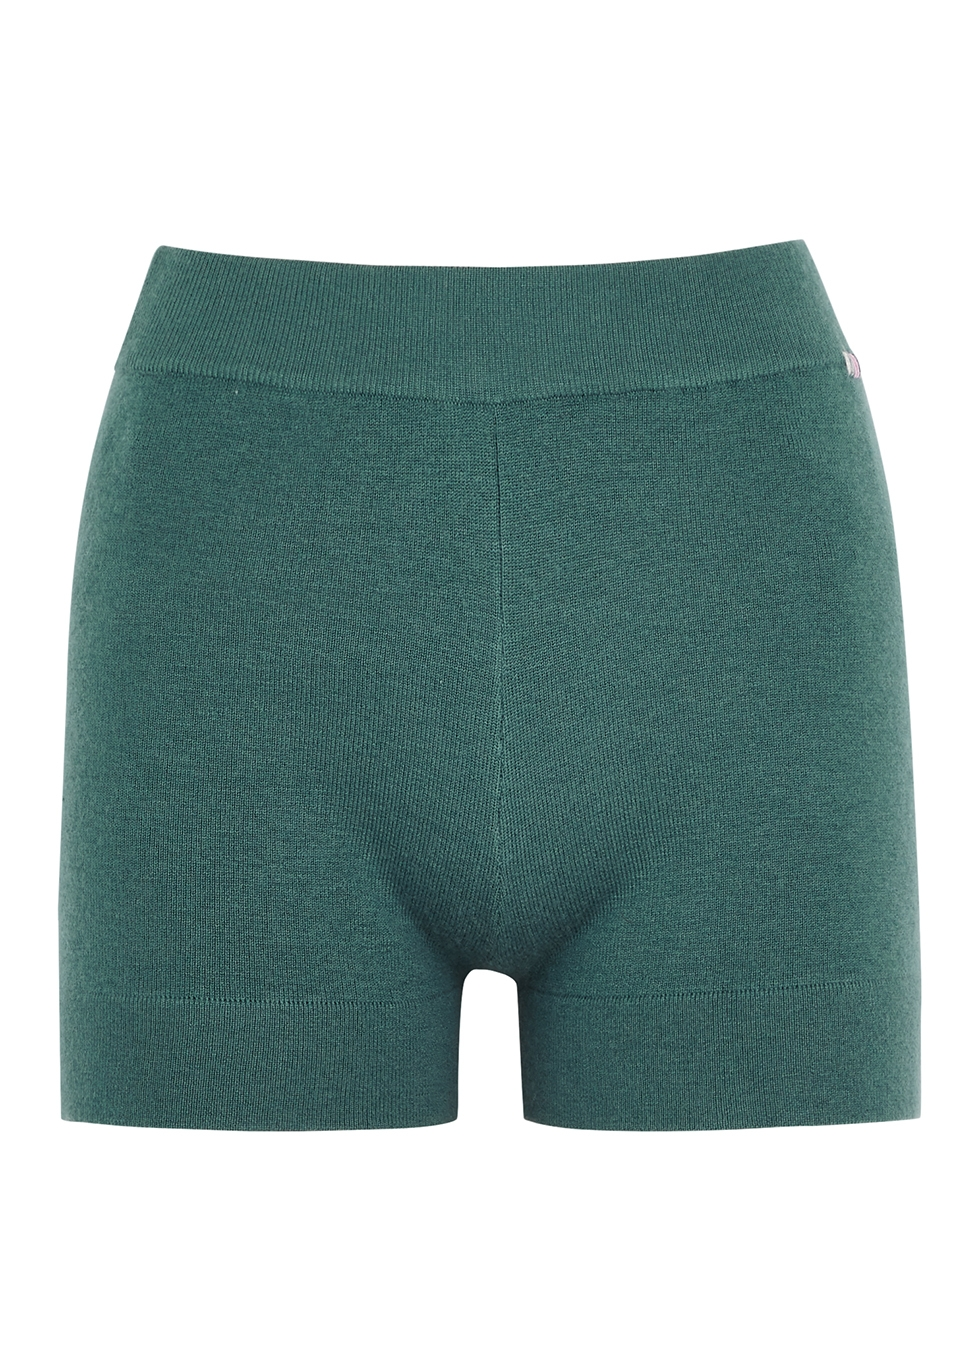 N°179 Very teal cashmere-blend shorts